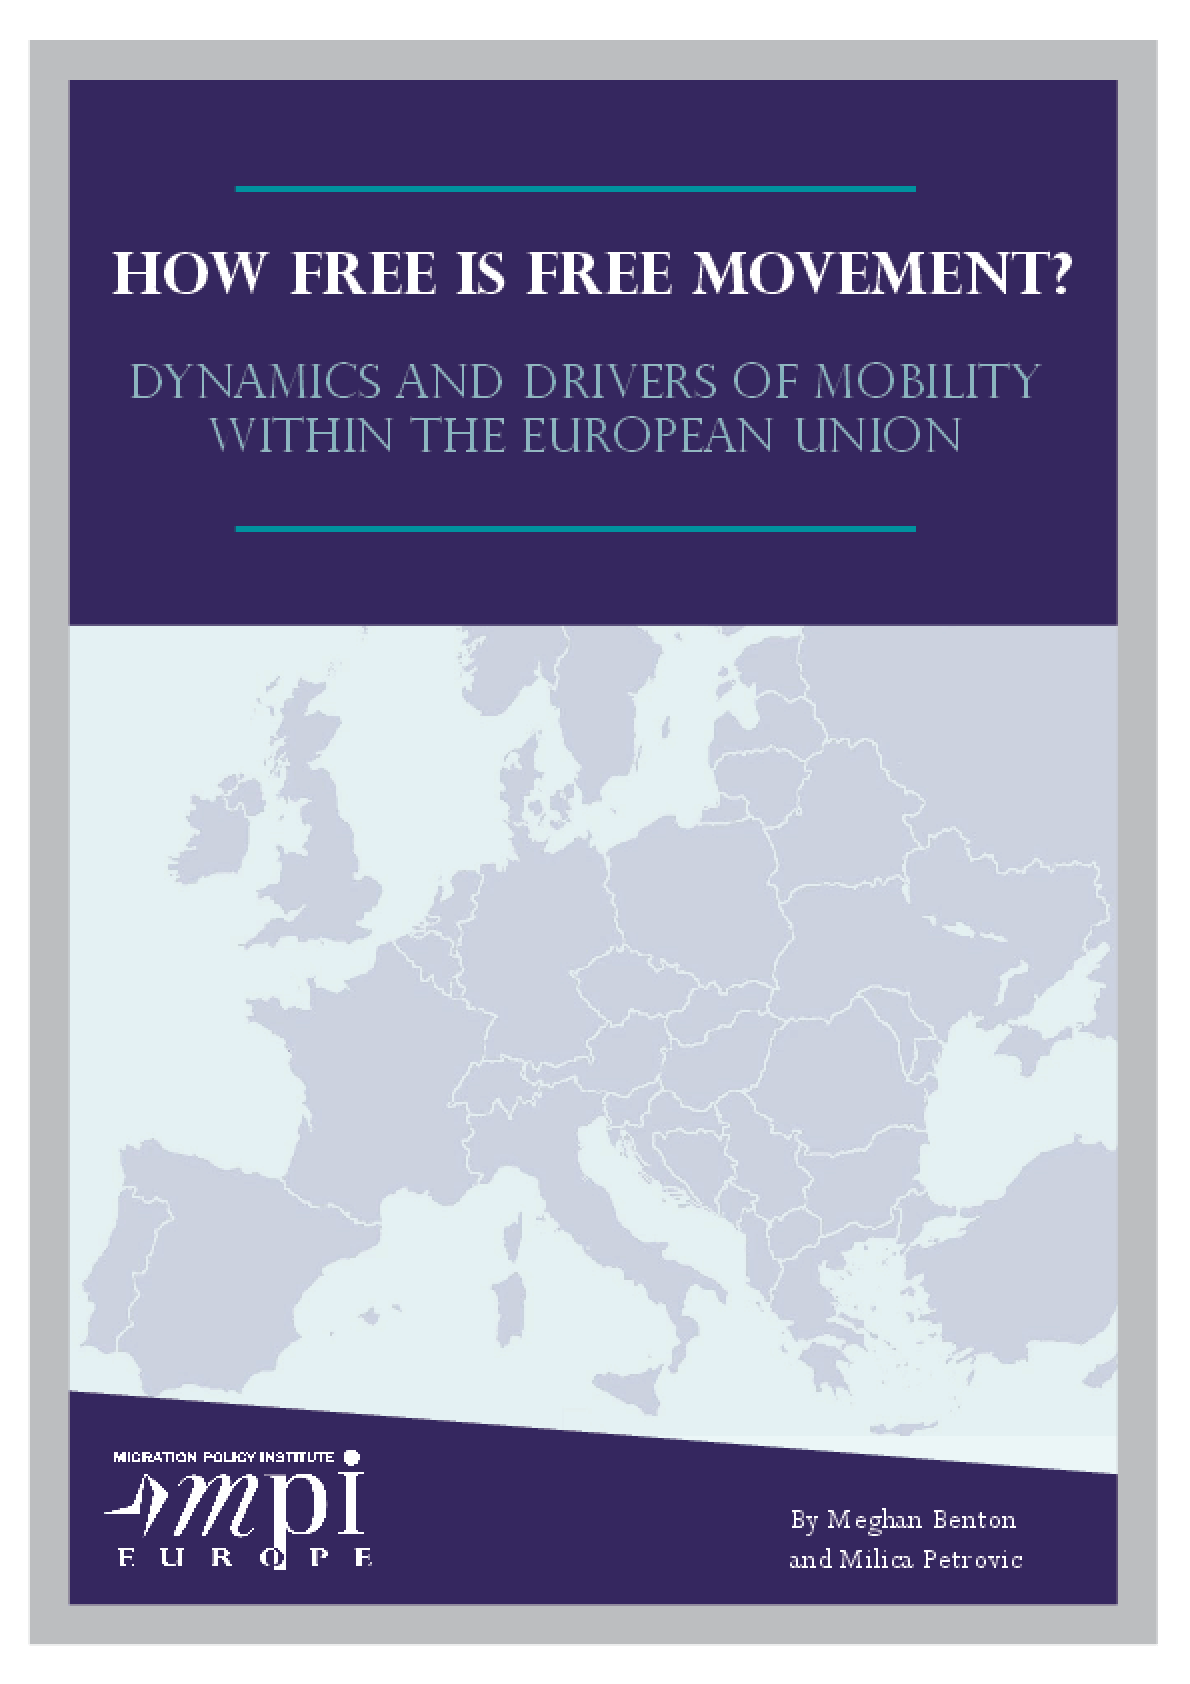 How Free is Free Movement? Dynamics and Drivers of Mobility Within the European Union